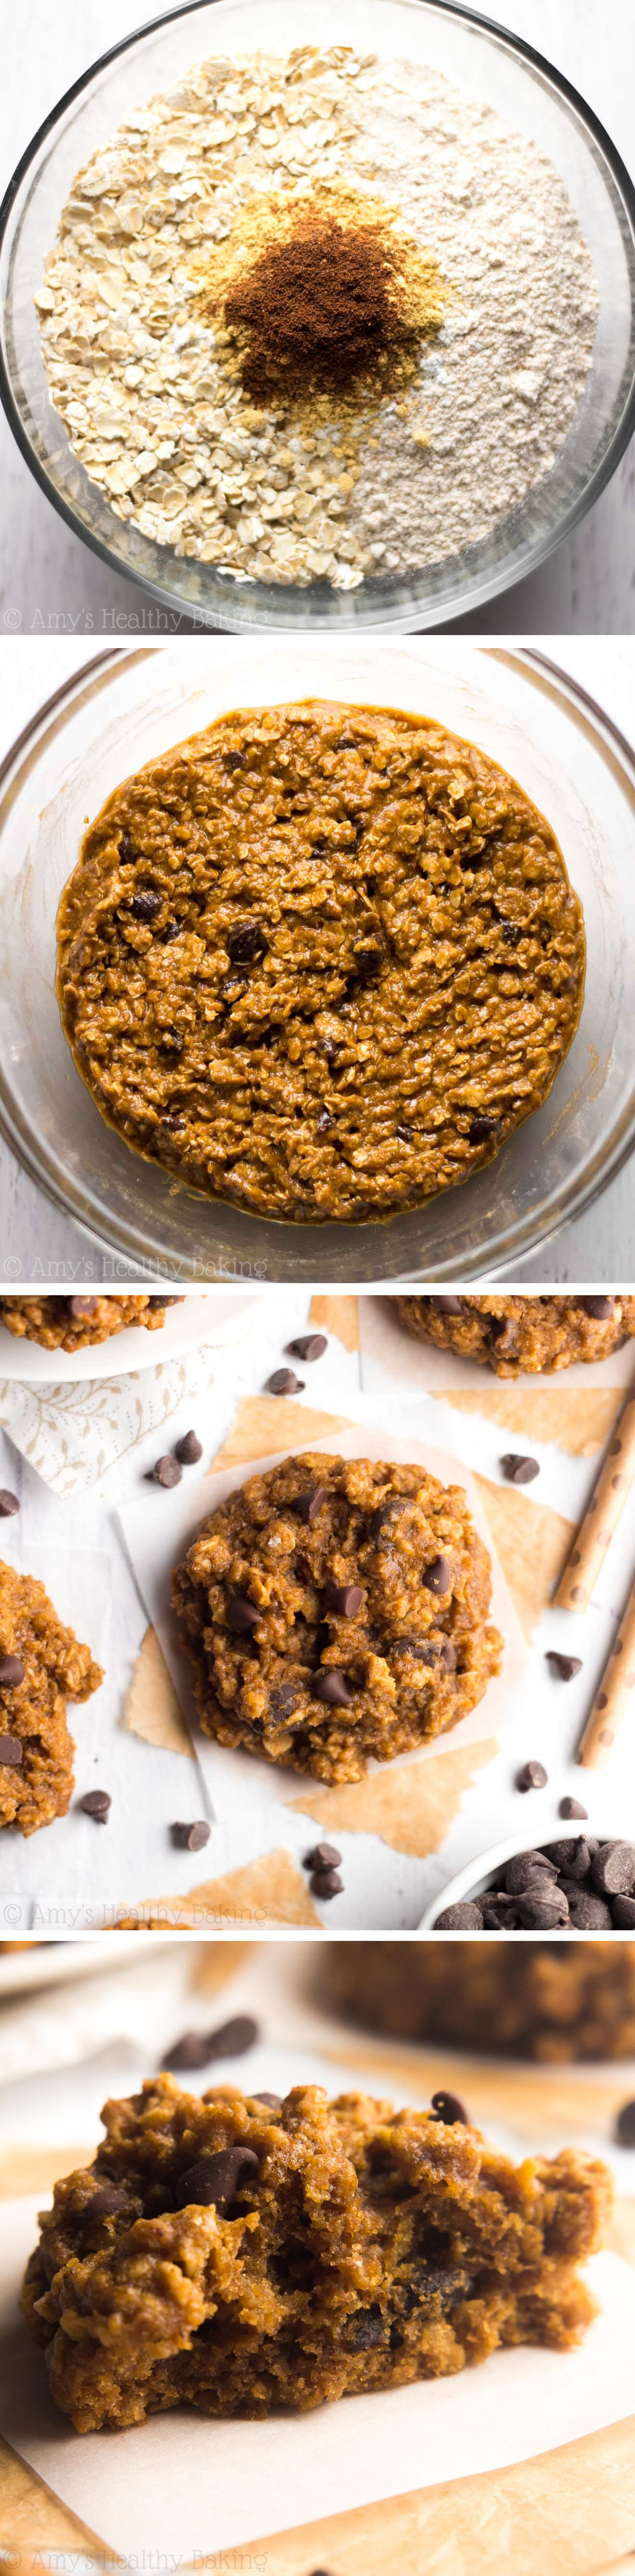 Clean-Eating Chocolate Chip Gingerbread Oatmeal Cookies -- SO chewy & addictive! These skinny cookies don't taste healthy at all!